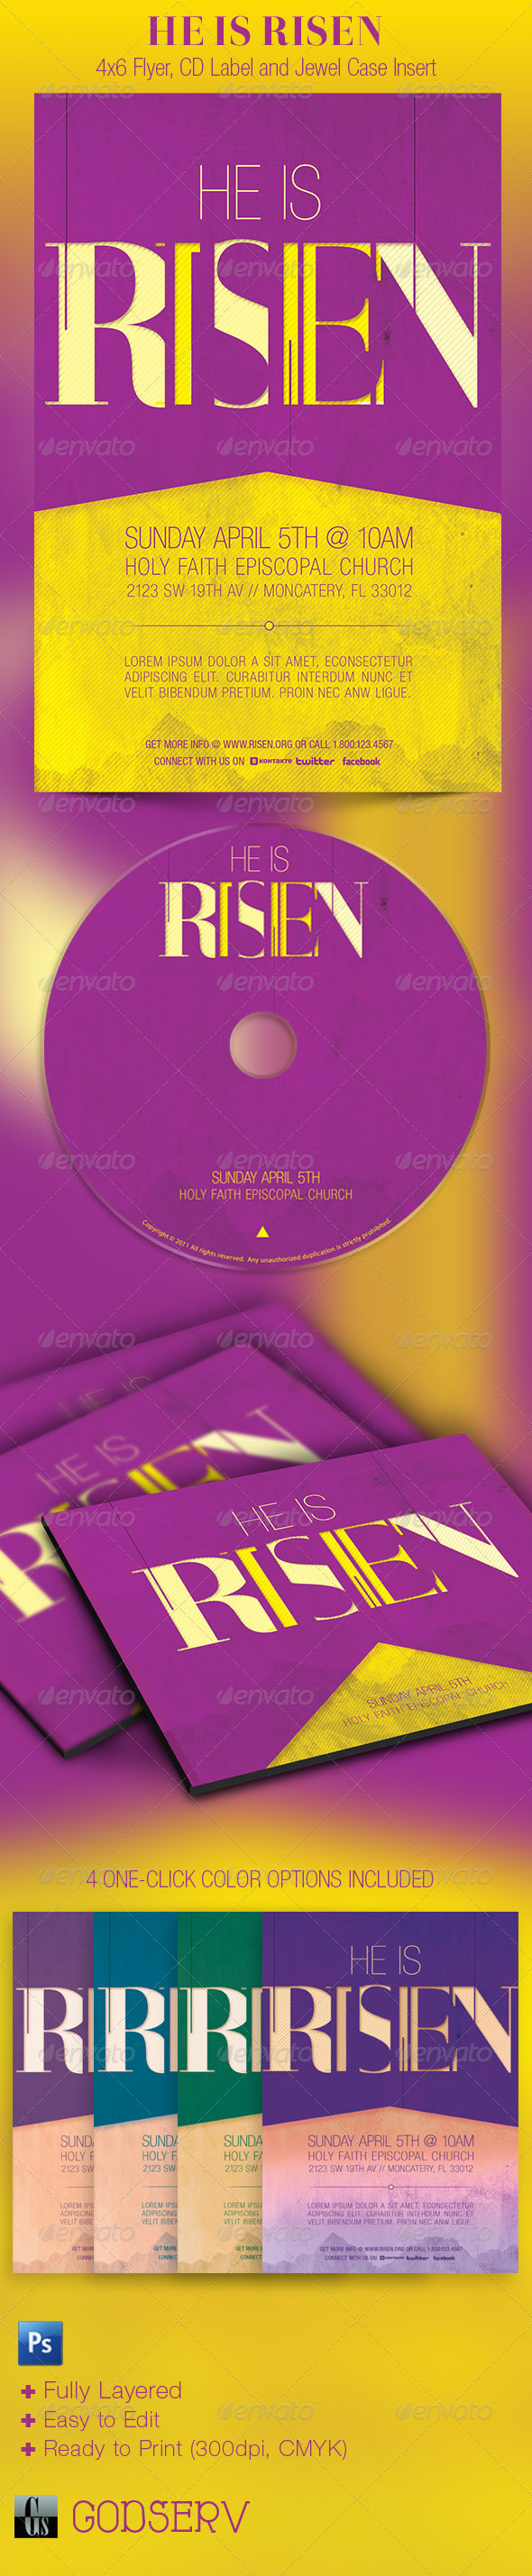 Risen Flyer CD Template - Church Flyers